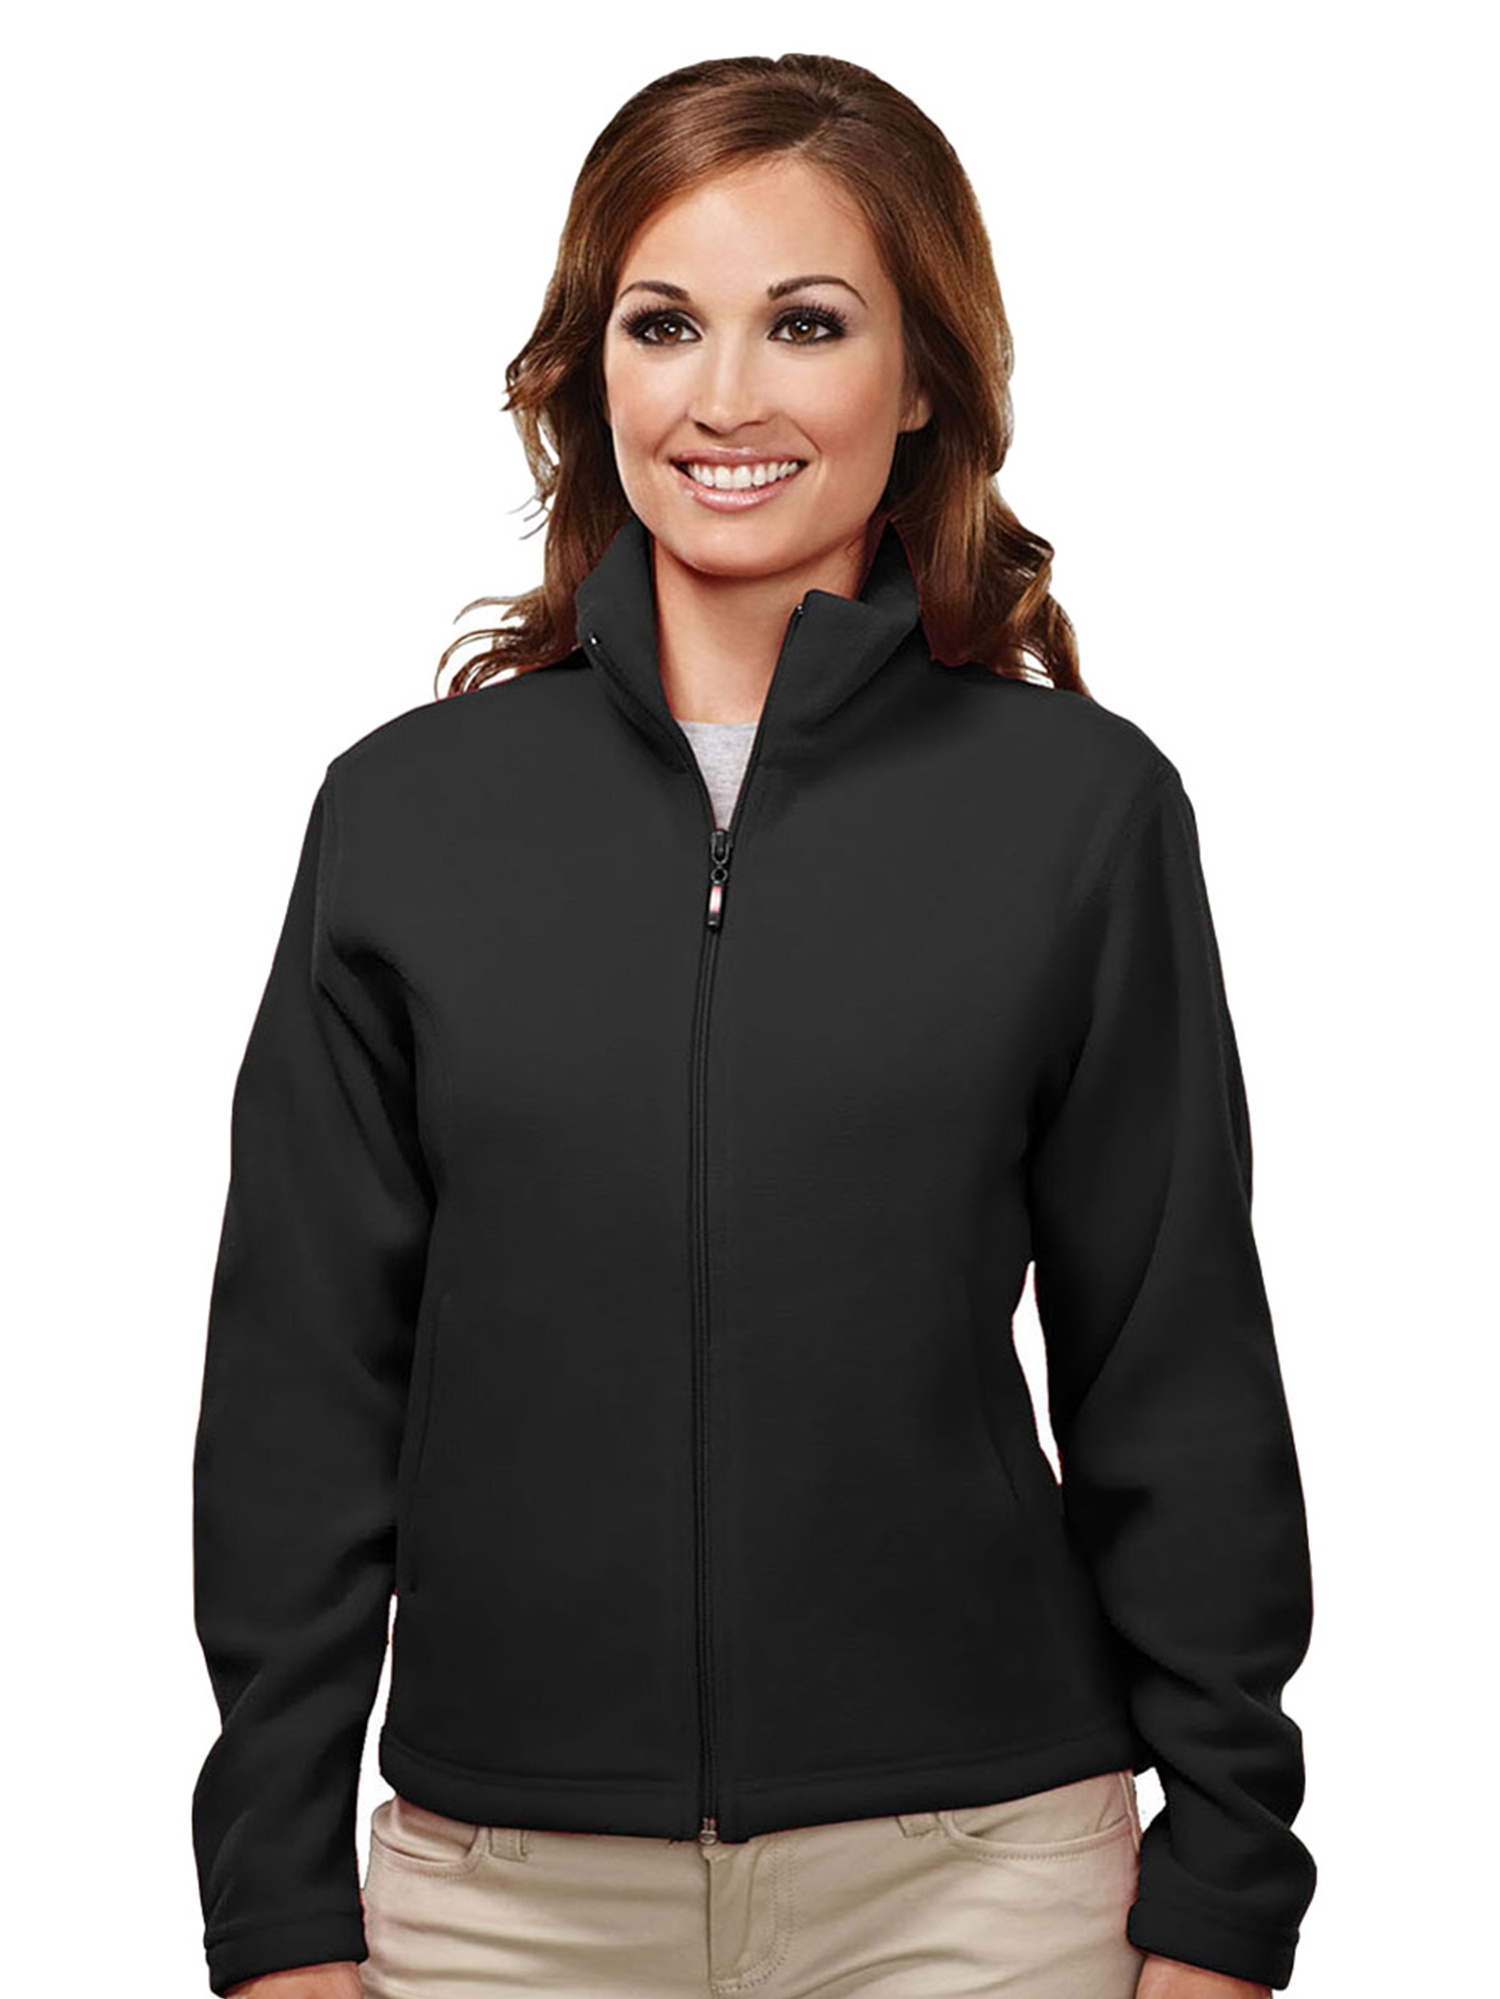 Tri-Mountain Women's Tailored Fit Perfect Fleece Jacket